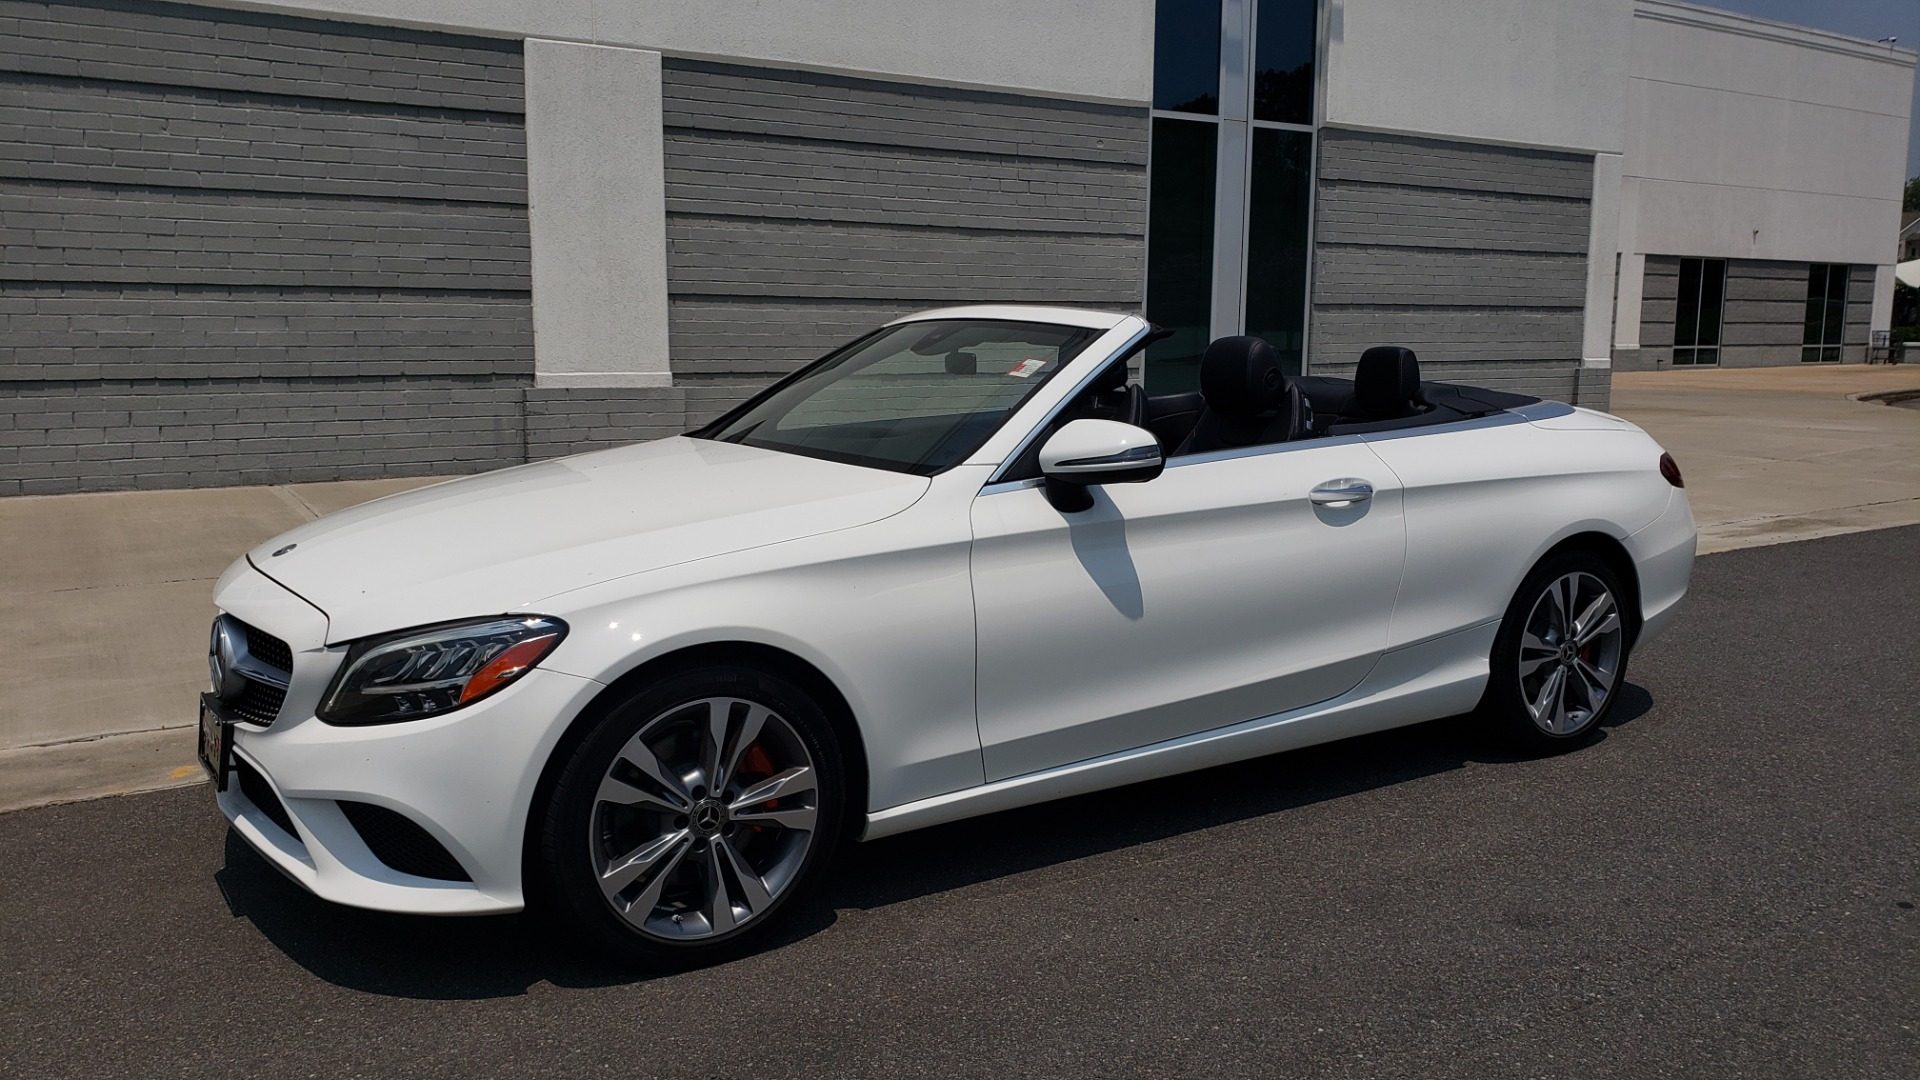 Used 2019 Mercedes-Benz C-CLASS C 300 CABRIOLET 2.0L / AUTO / NAV / HD RADIO / REARVIEW for sale $46,995 at Formula Imports in Charlotte NC 28227 1